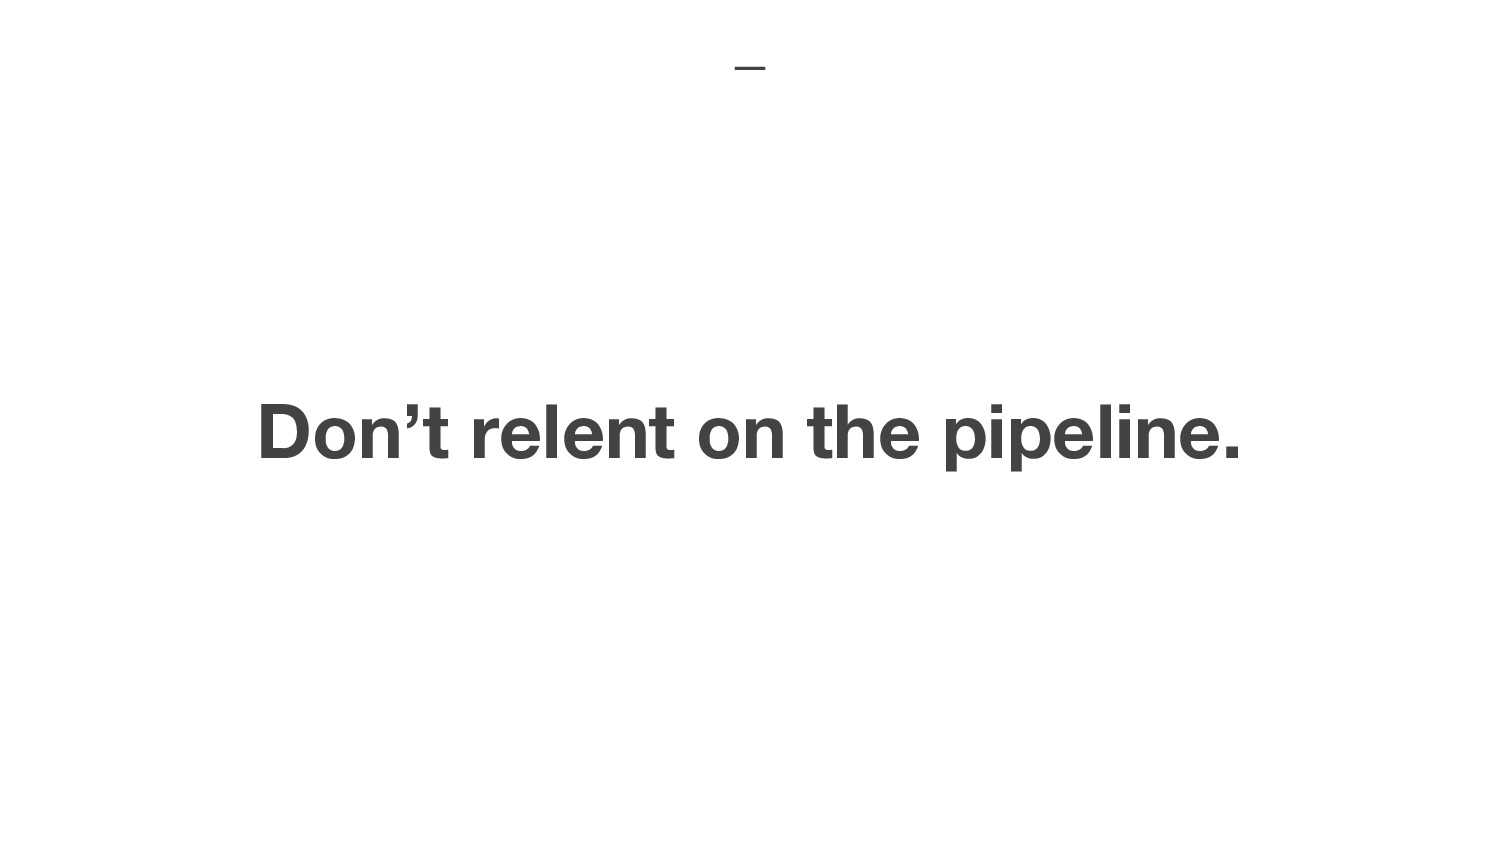 Don't relent on the pipeline.